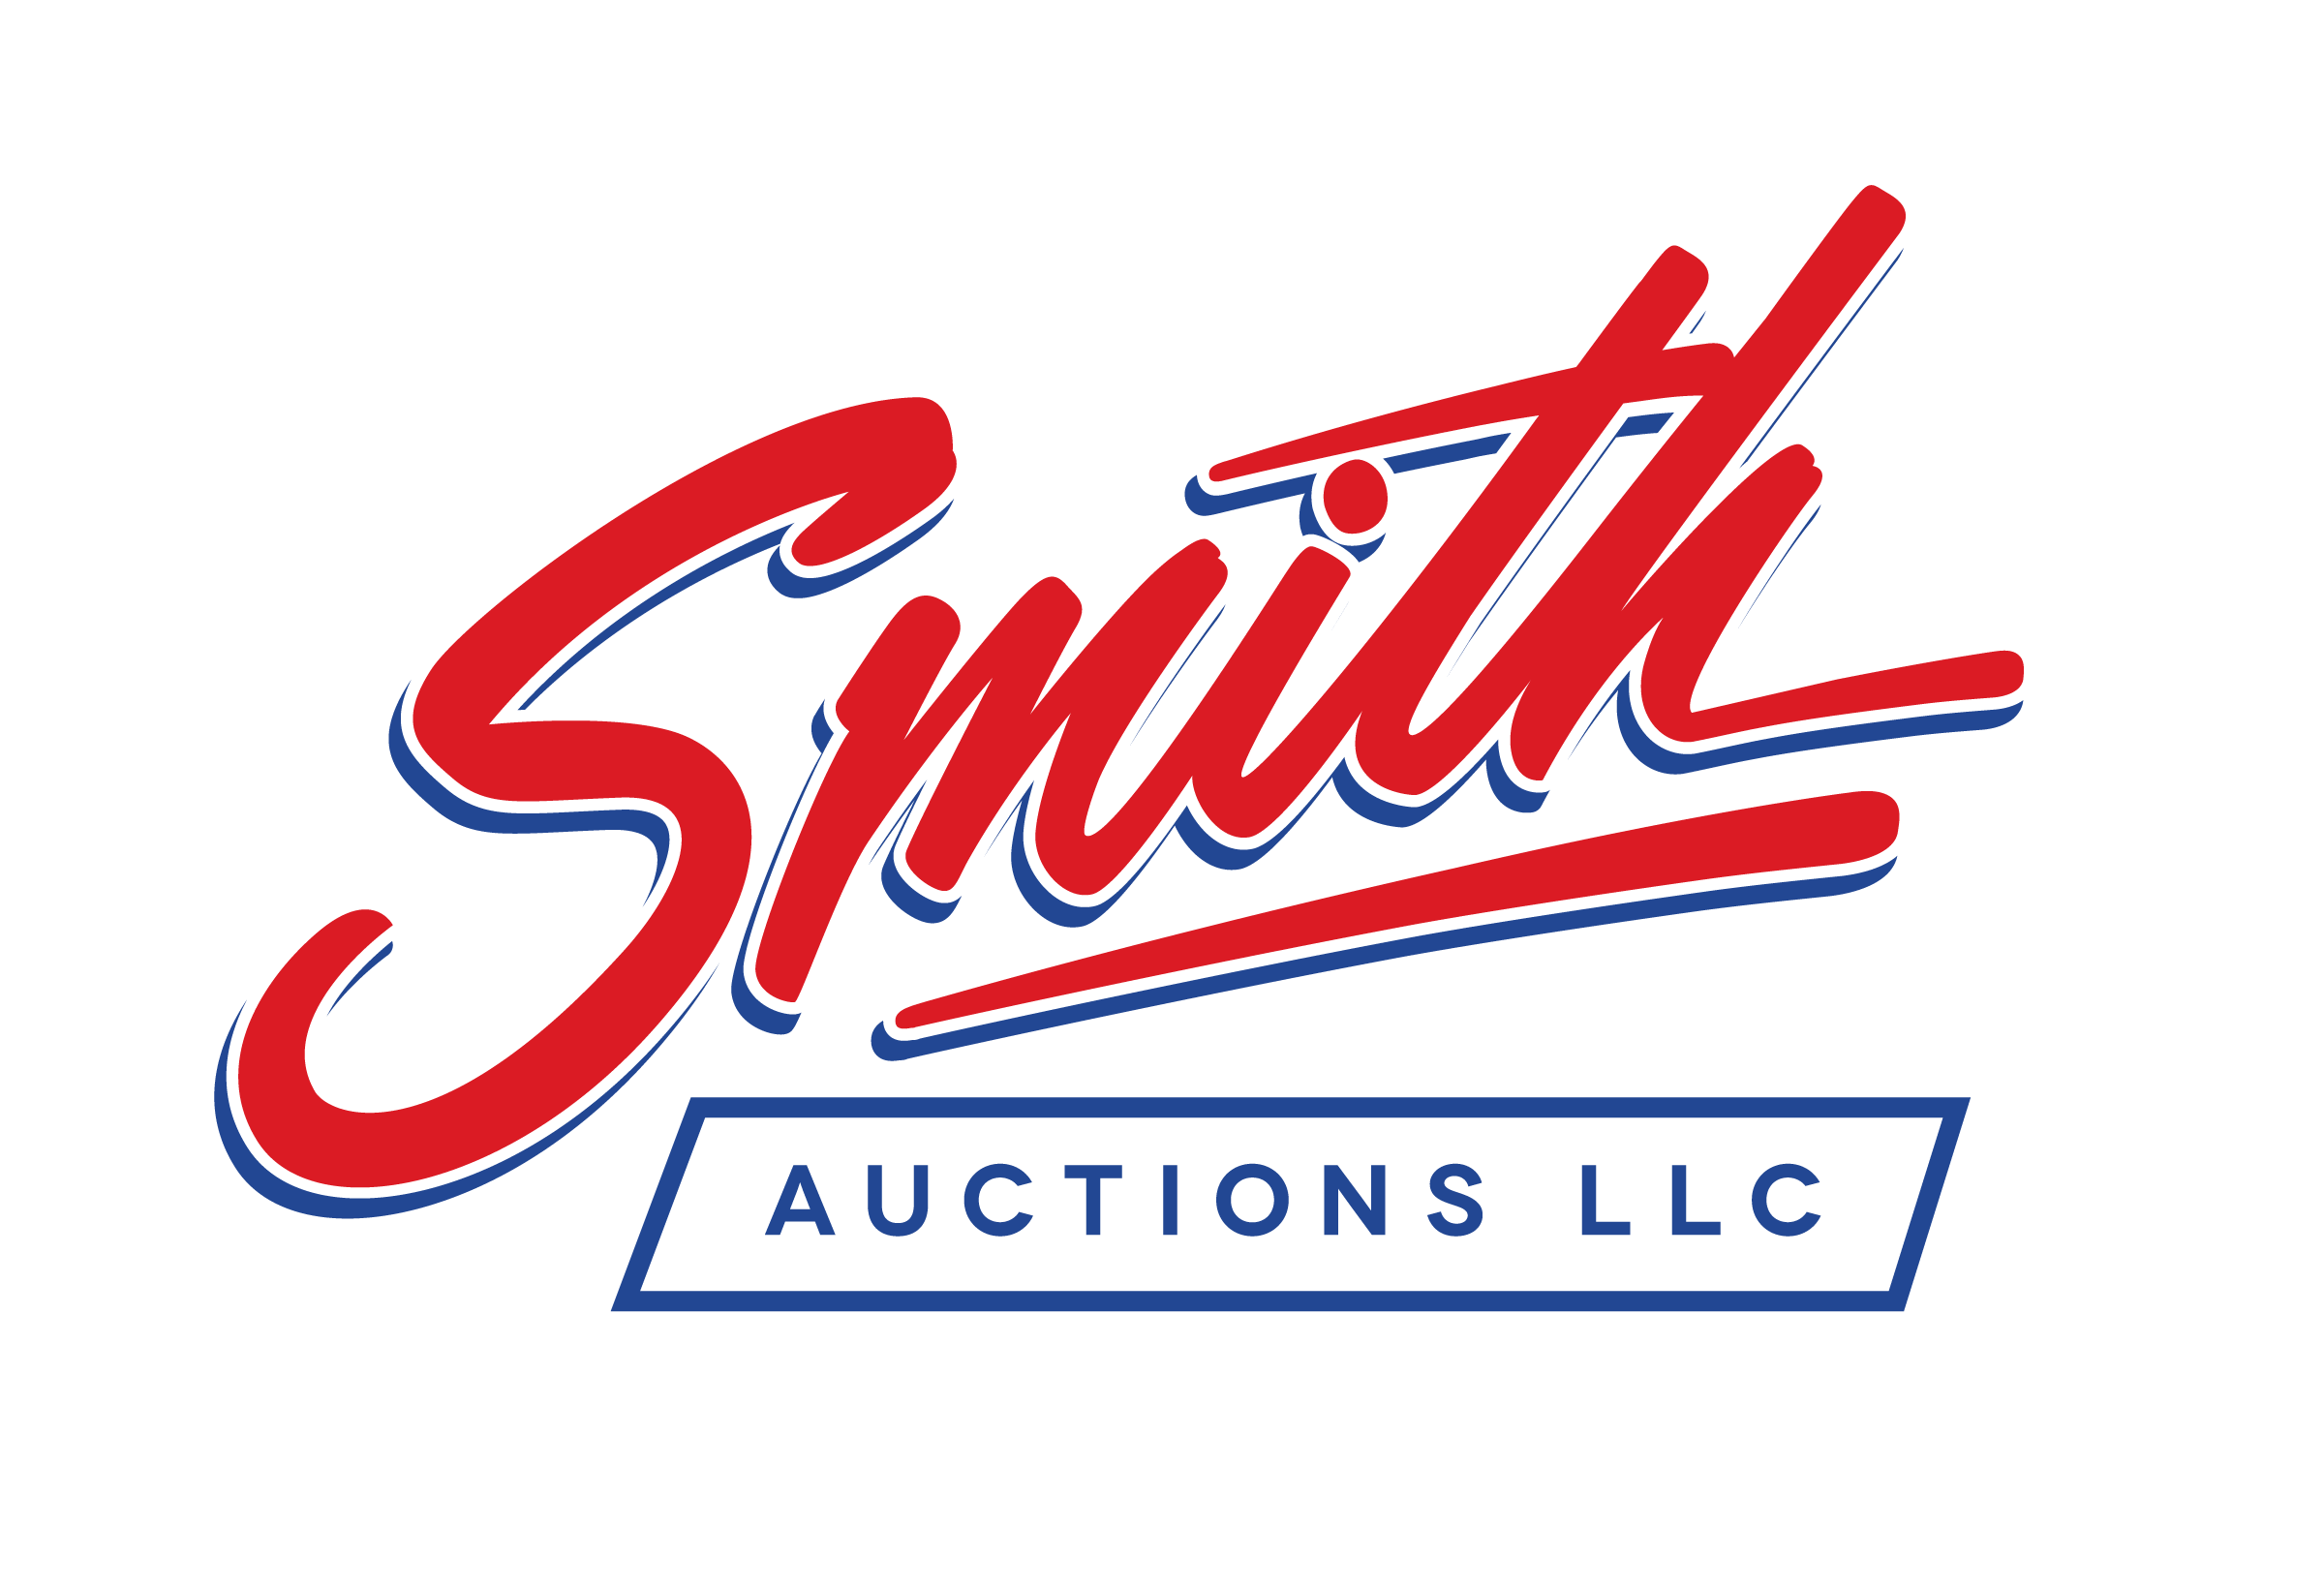 smith auctions llc png logo 5848